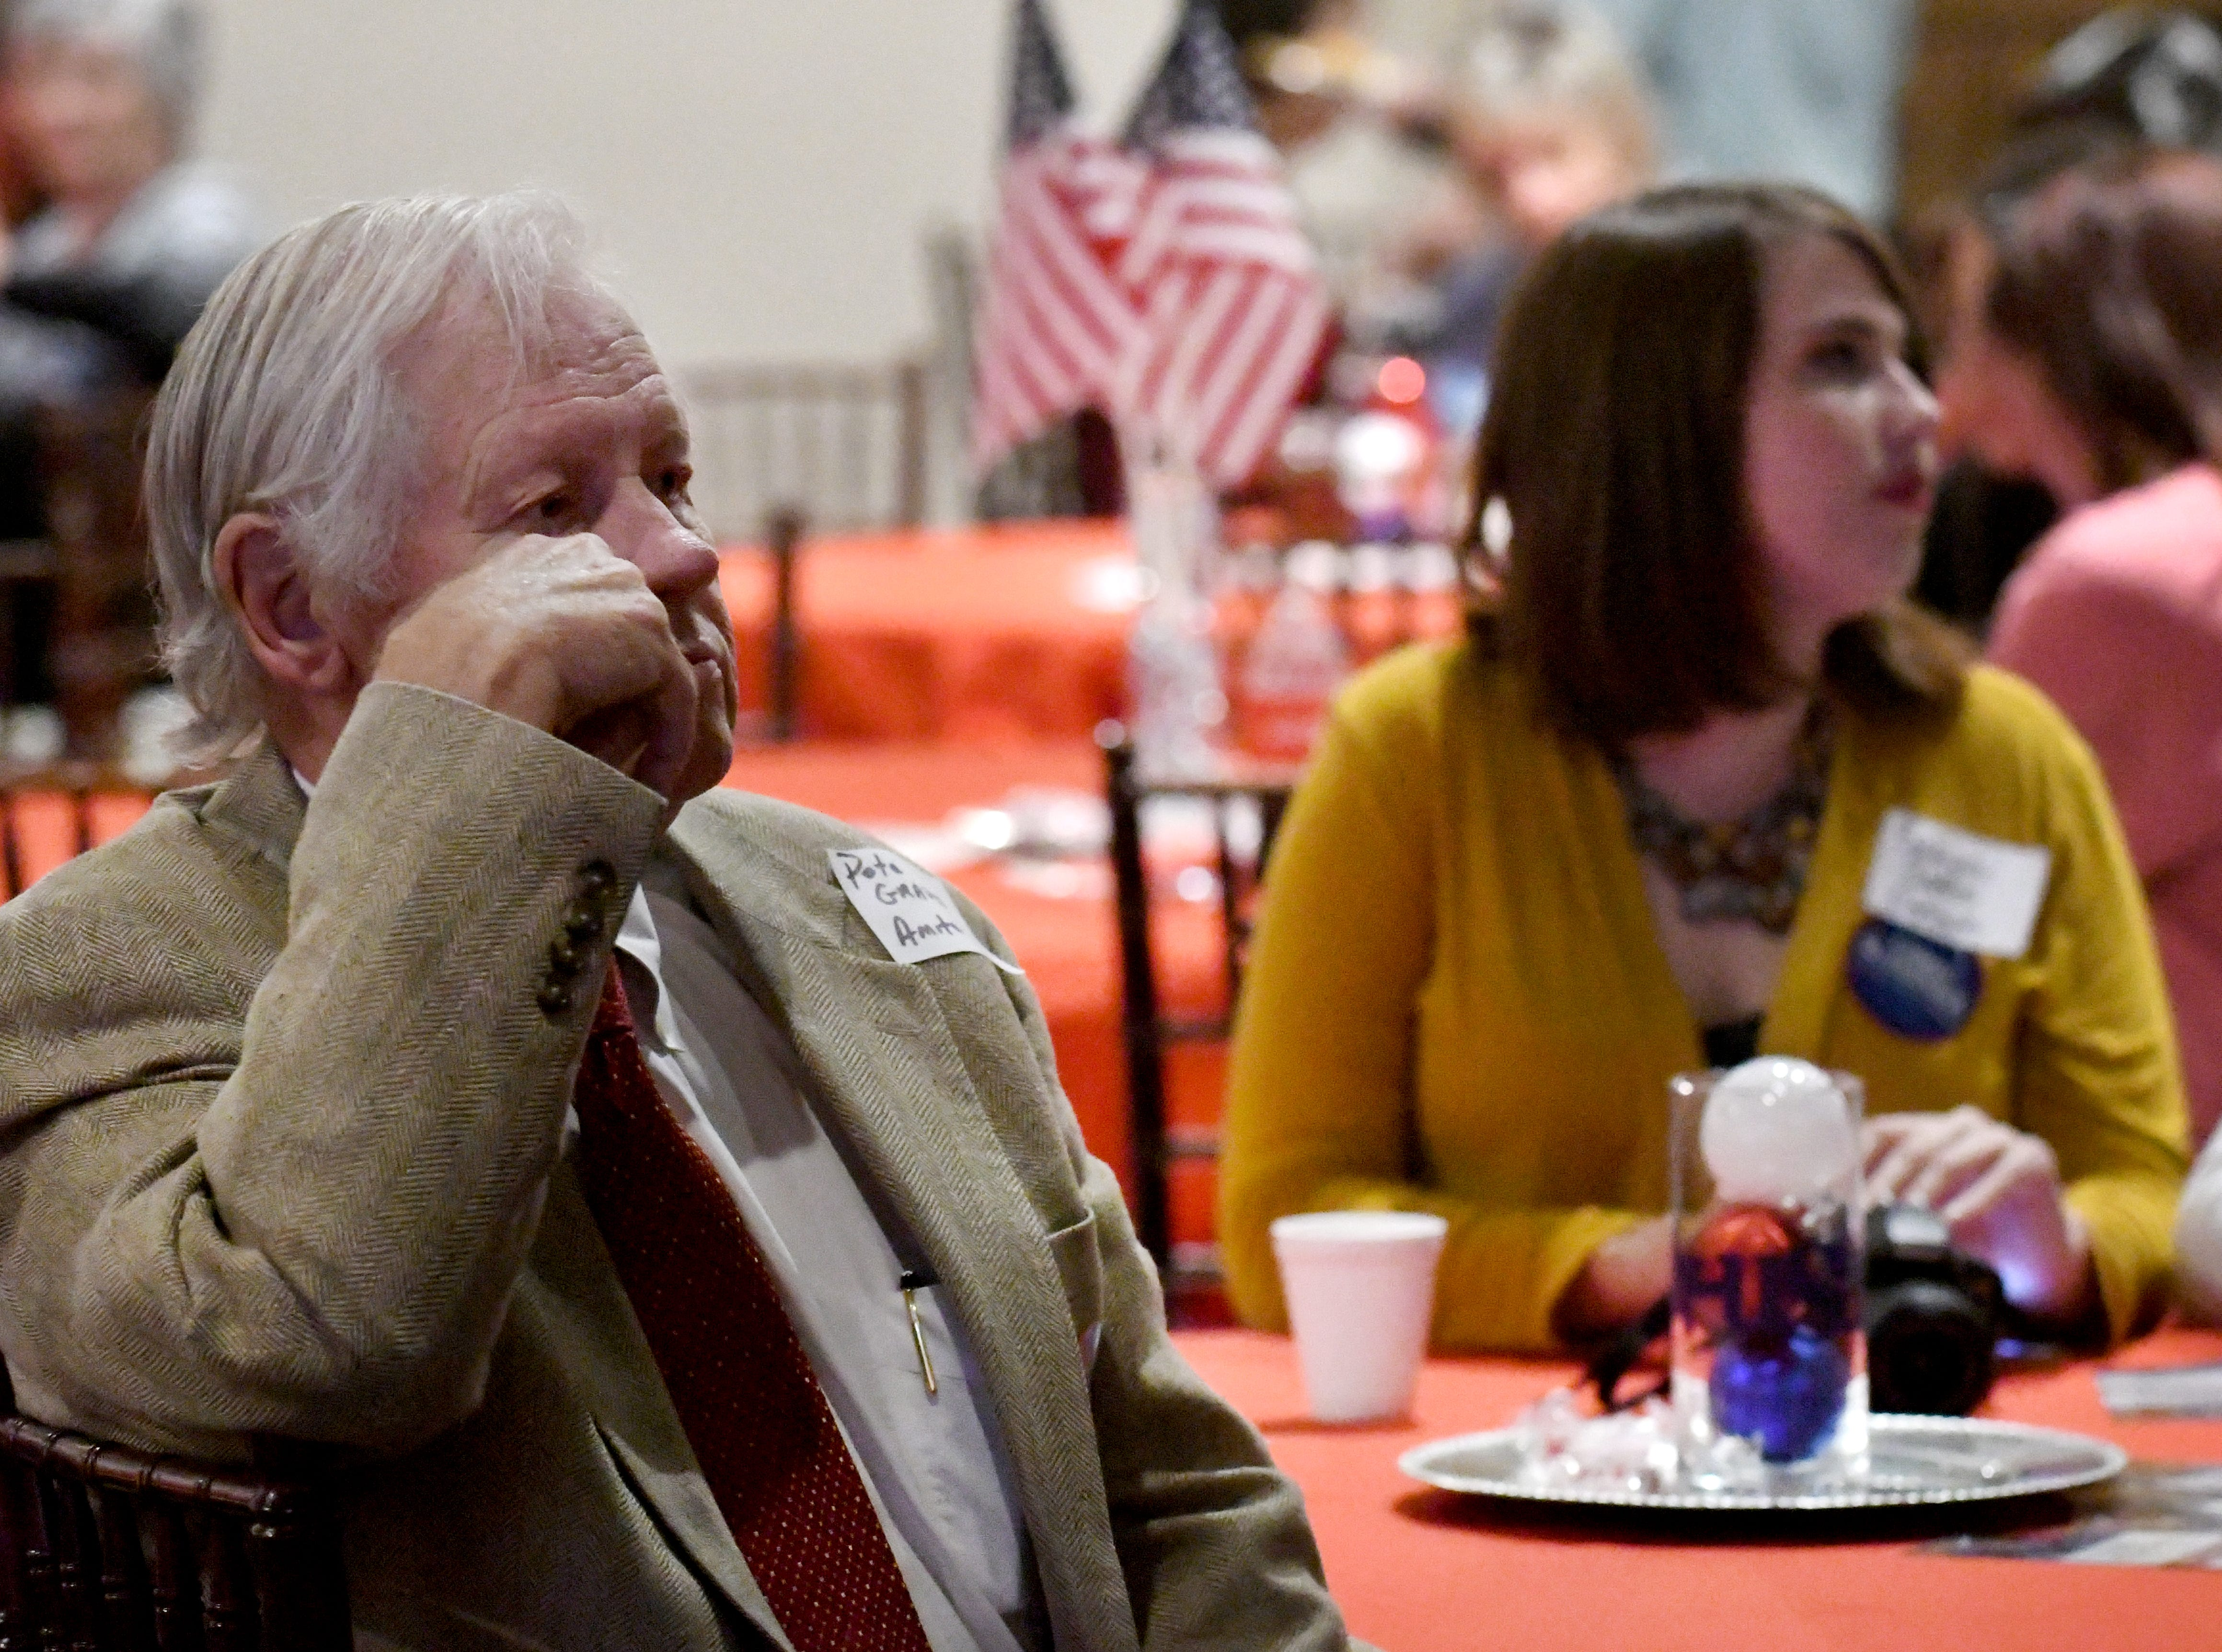 Republican supporters wait to hear the election results for senate candidate Chris McDaniel in Laurel on Tuesday, November 6, 2018. McDaniel looses the senate race to Hyde-Smith and Espy.